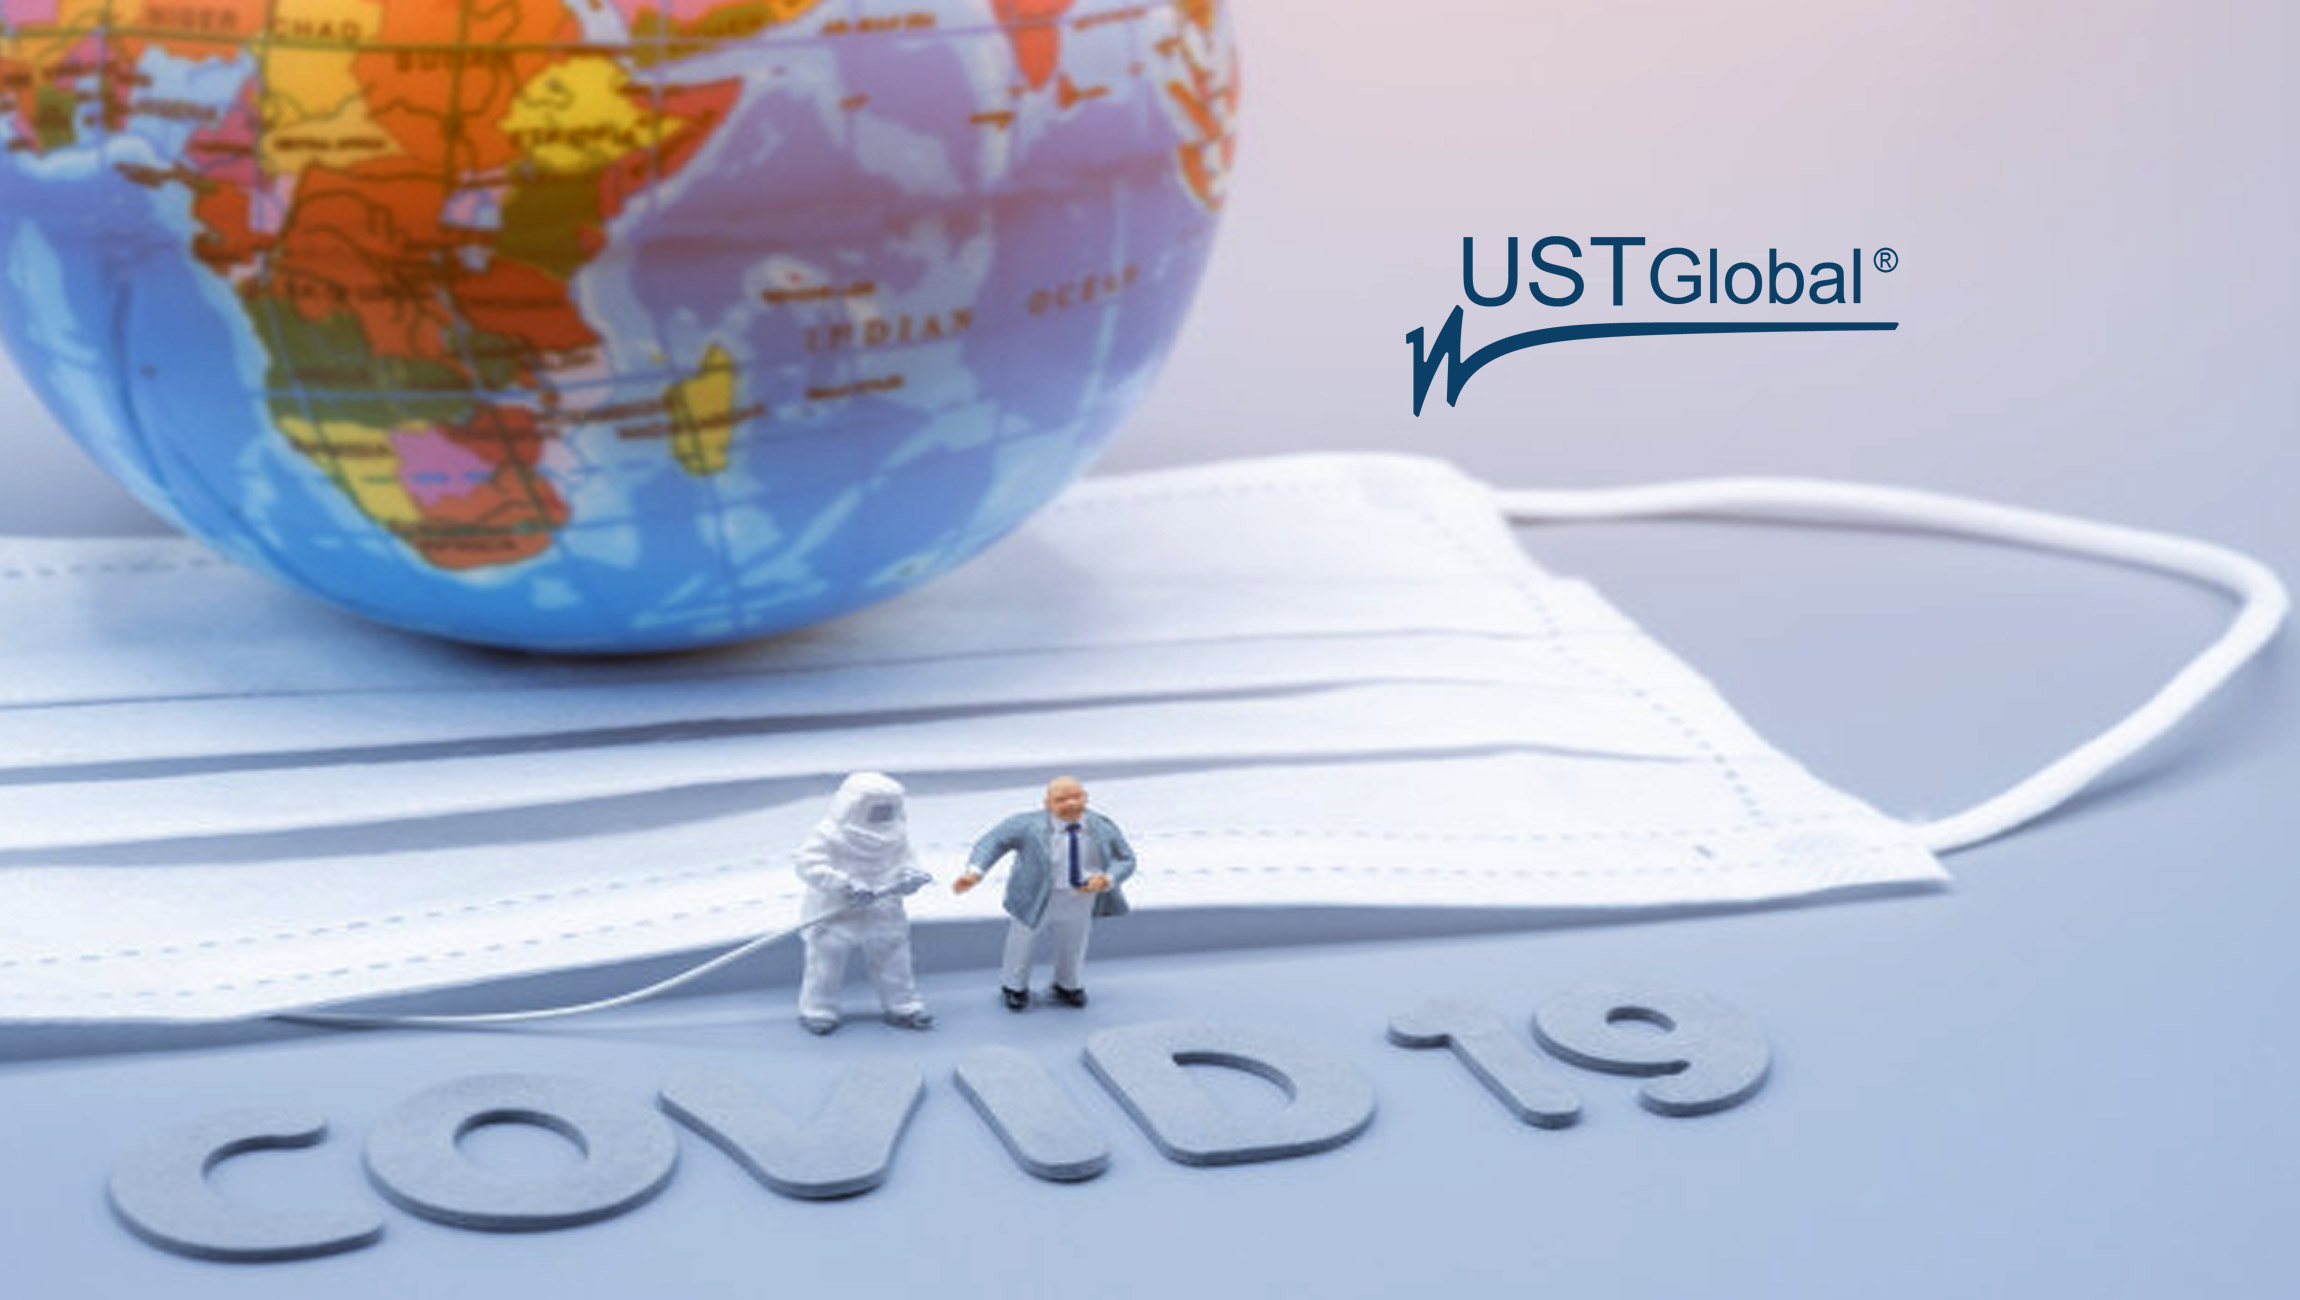 UST Global Offers Digital Solutions in Preparing Companies to Work in the New Normal and Bring Employees Back to Offices